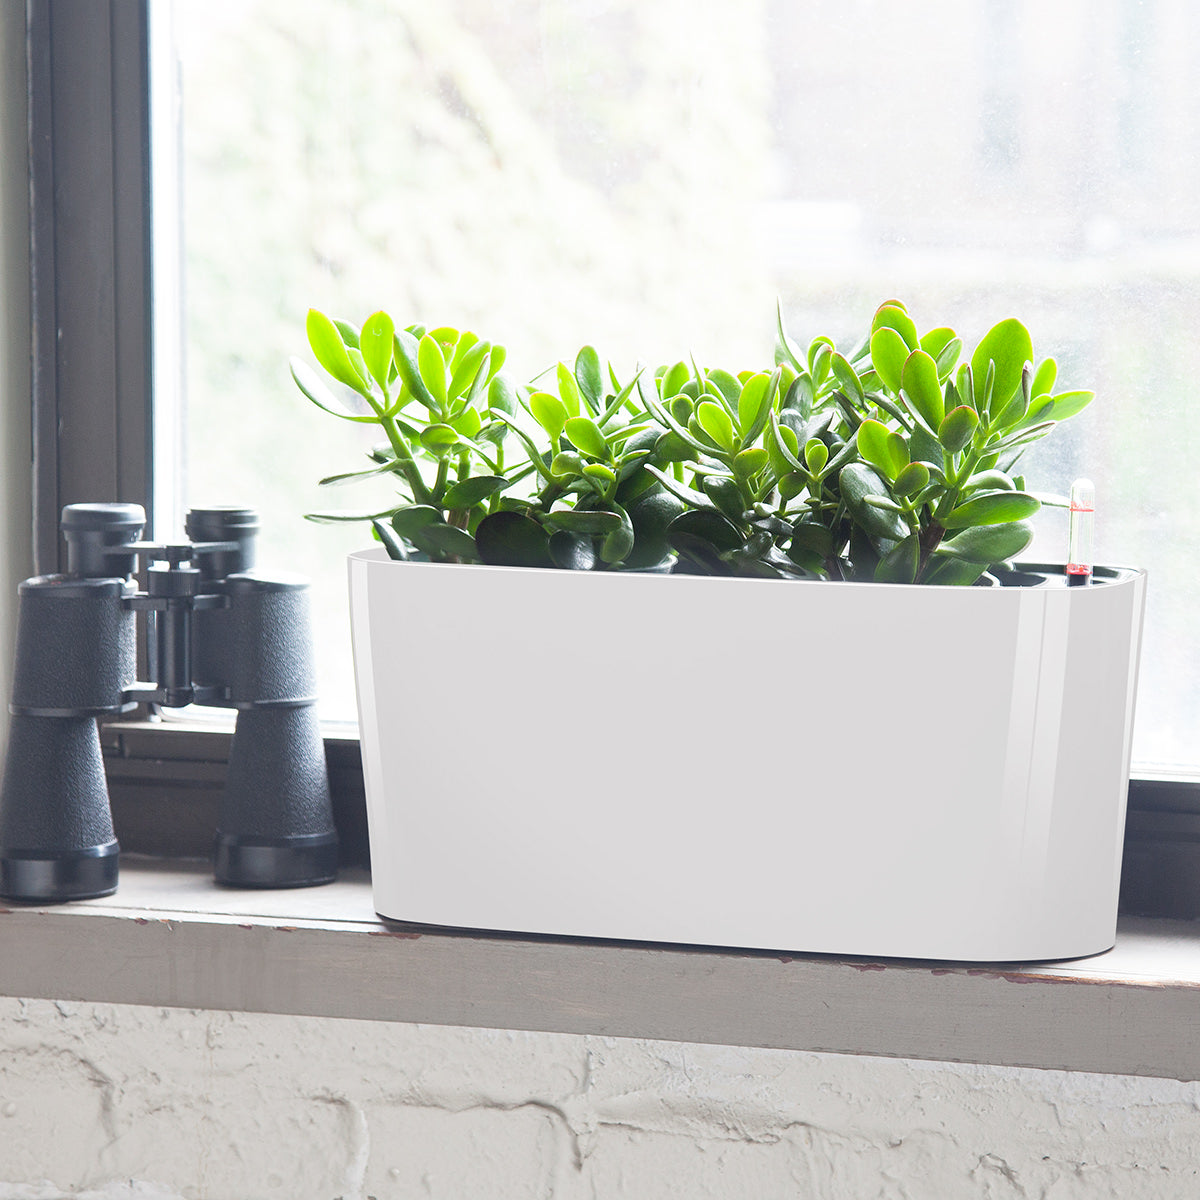 Jade plant potted in Lechuza windowsill planter